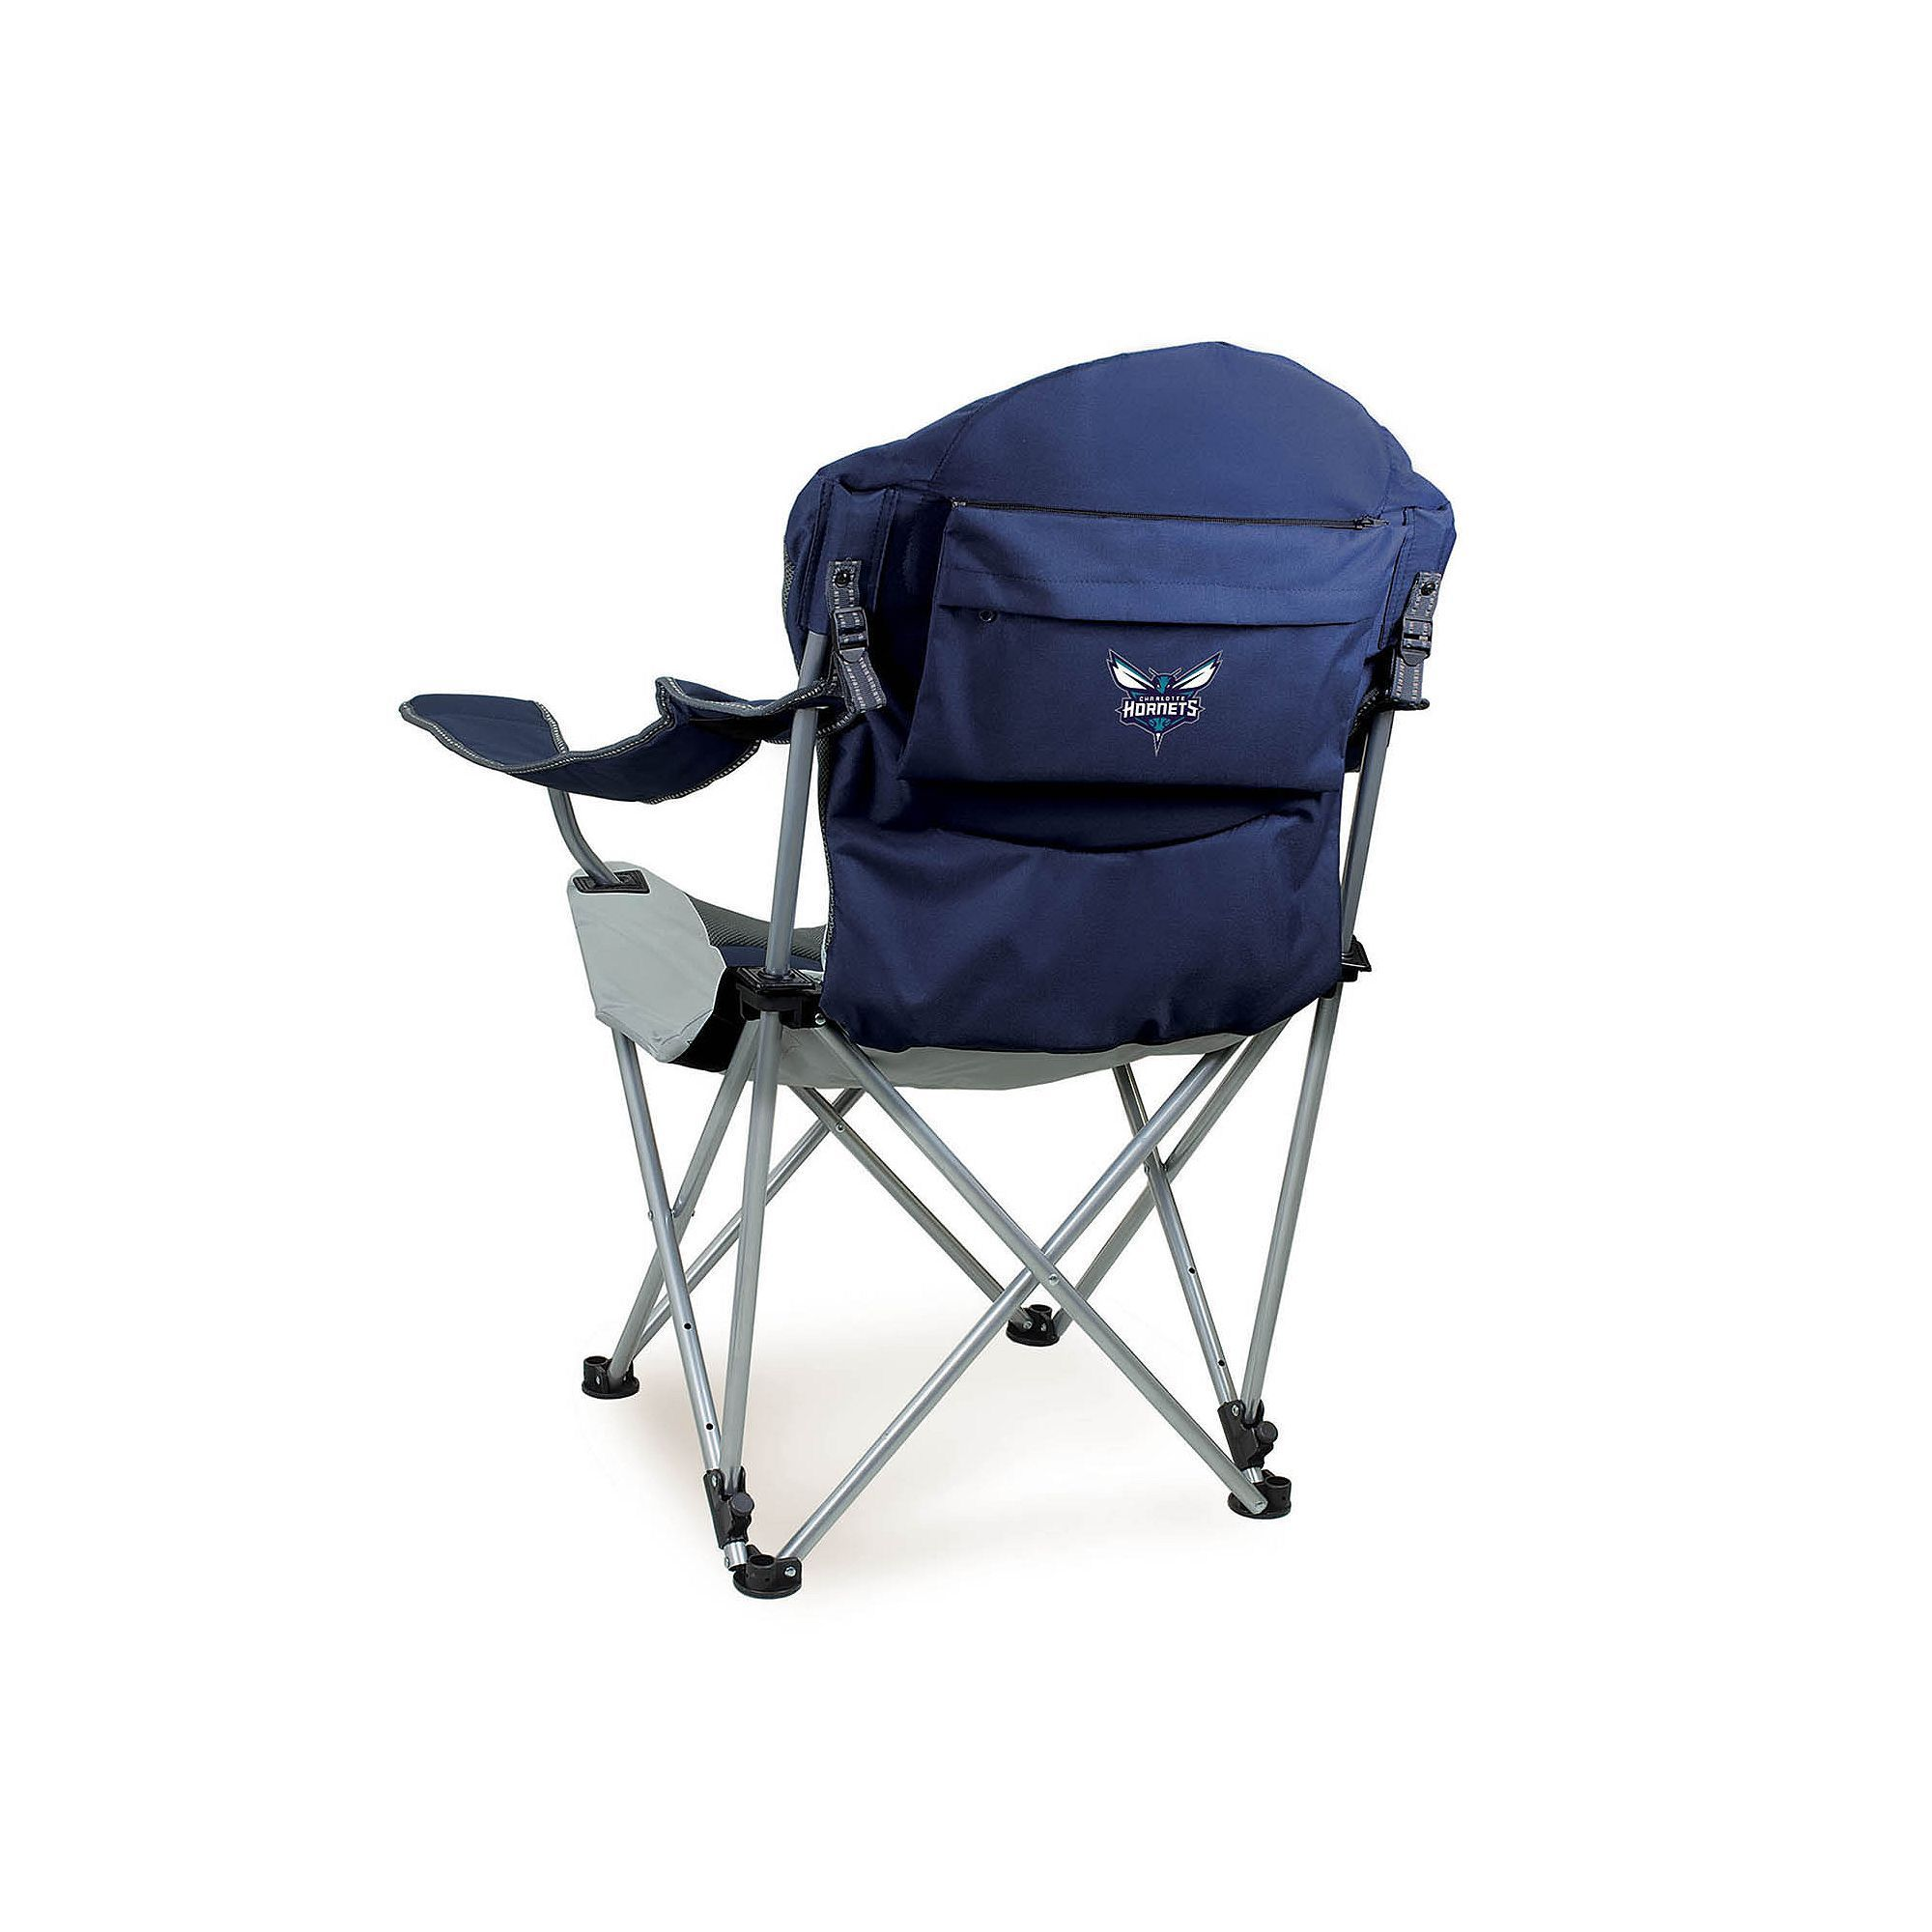 Outdoor Picnic Time Charlotte Hornets Reclining Camp Chair Blue